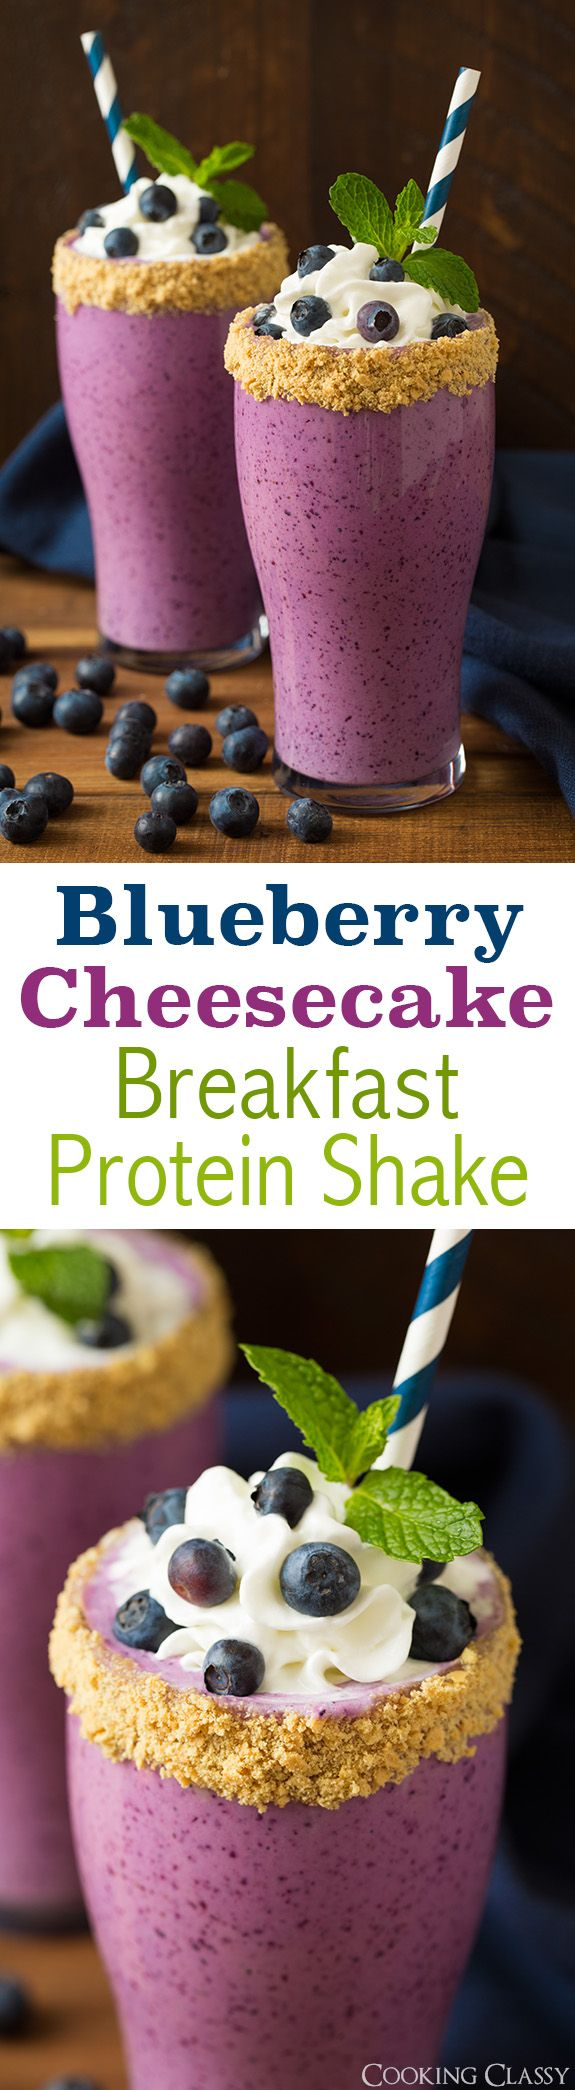 Blueberry Cheesecake Protein Breakfast Shake - 18g protein. Tastes so much like…